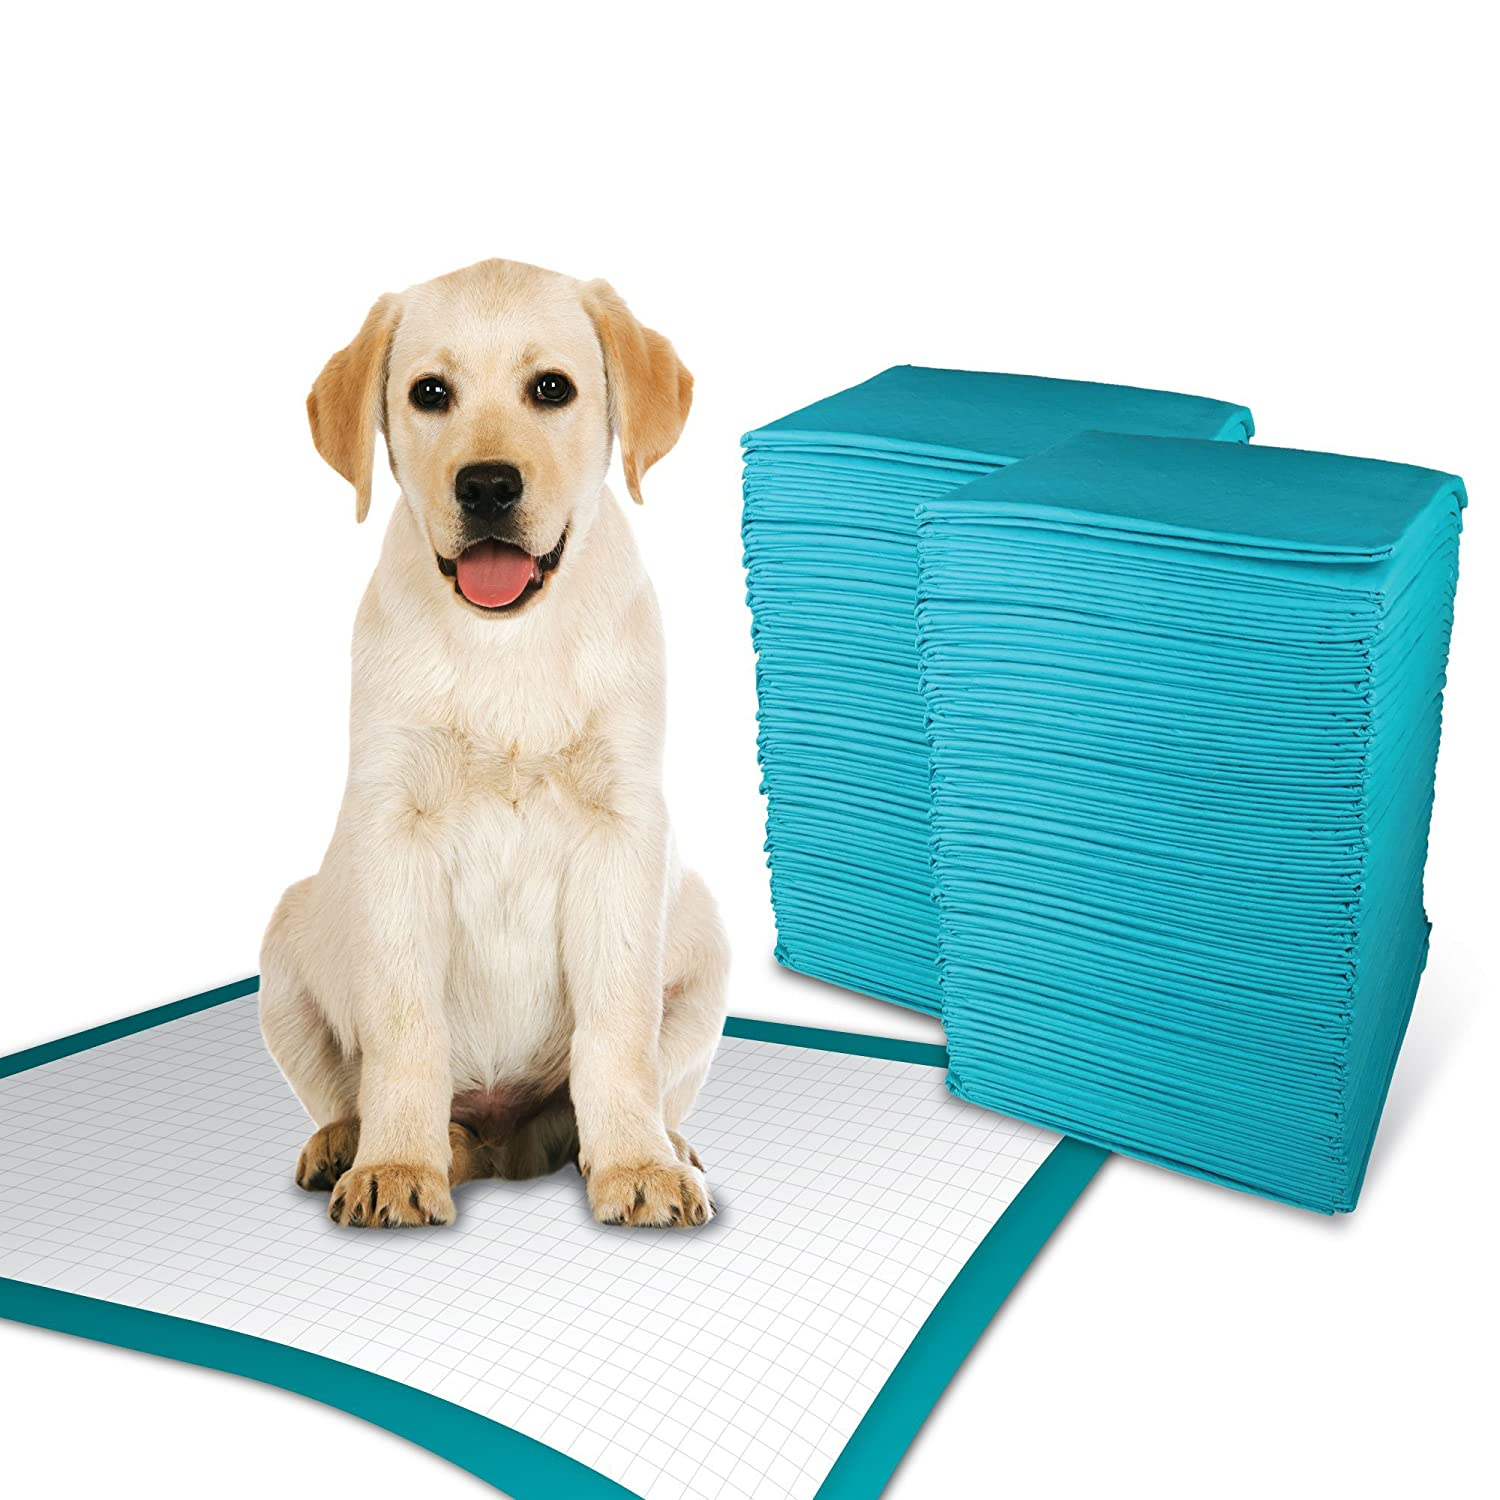 Simple Solution Extra Large Dog Training and Puppy Pads, Extra Large - 200-Count OUT! International 11268ONL-200-1P